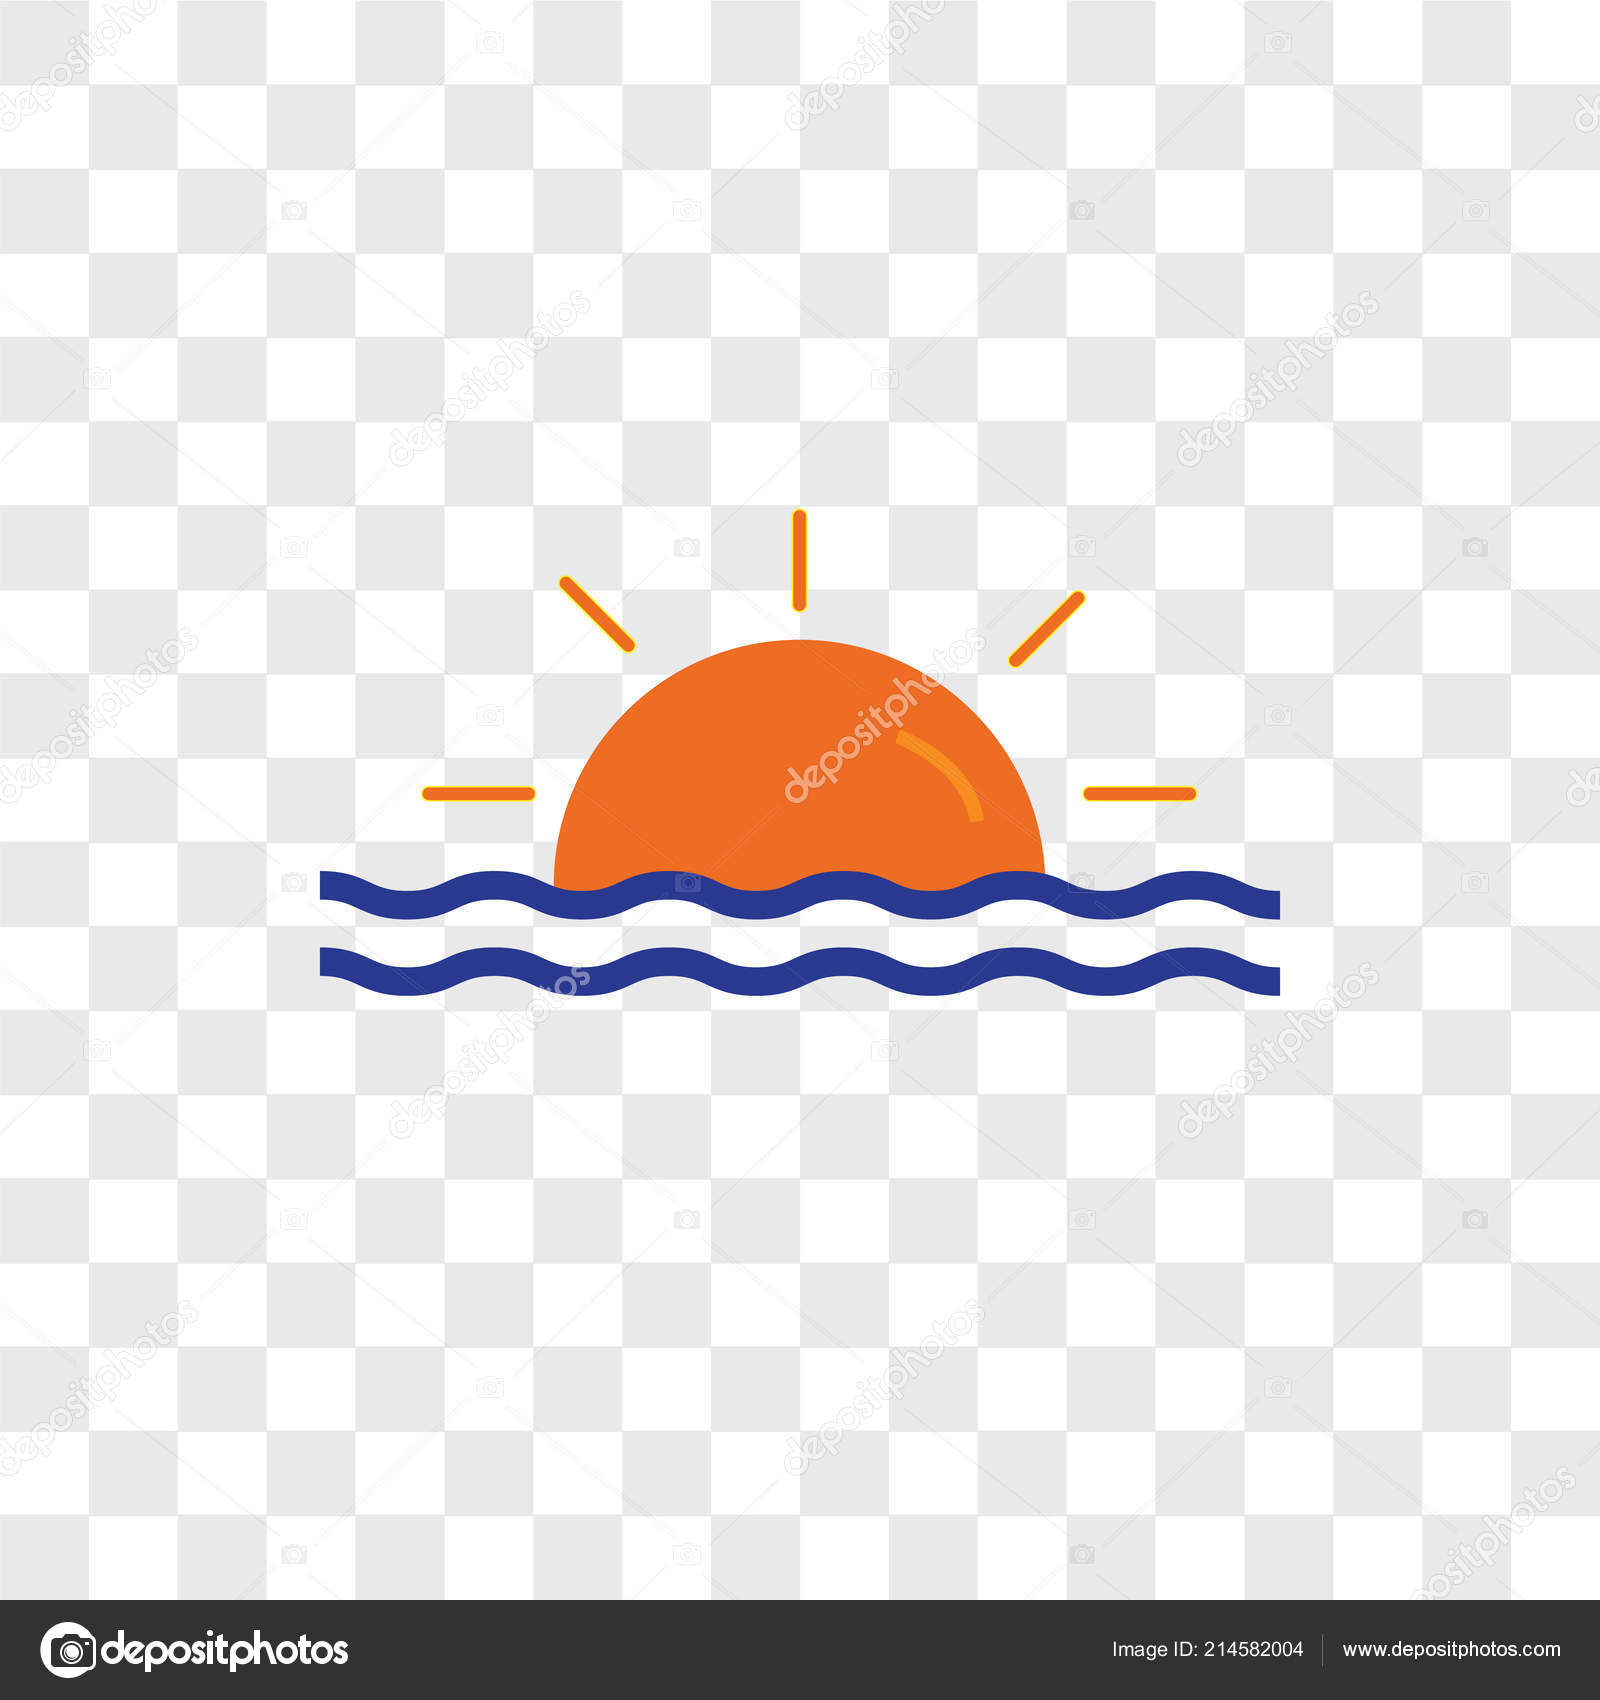 sunset vector icon isolated transparent background sunset logo concept stock vector c tvectoricons 214582004 https depositphotos com 214582004 stock illustration sunset vector icon isolated transparent html